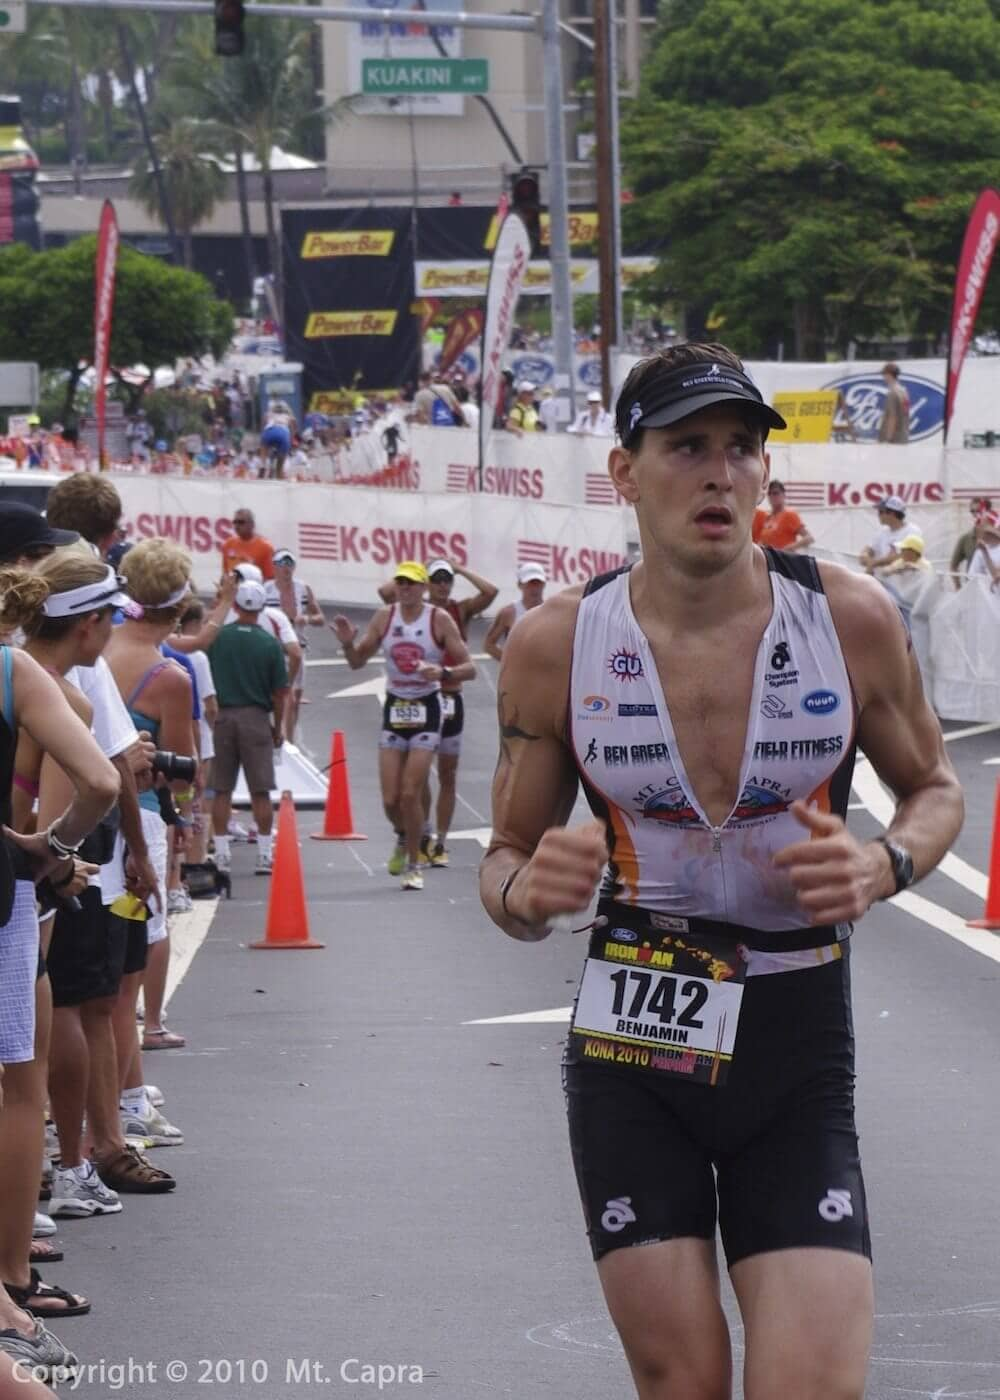 Kona, Hawaii - Ironman World Championship - 3rd leg of Marathon